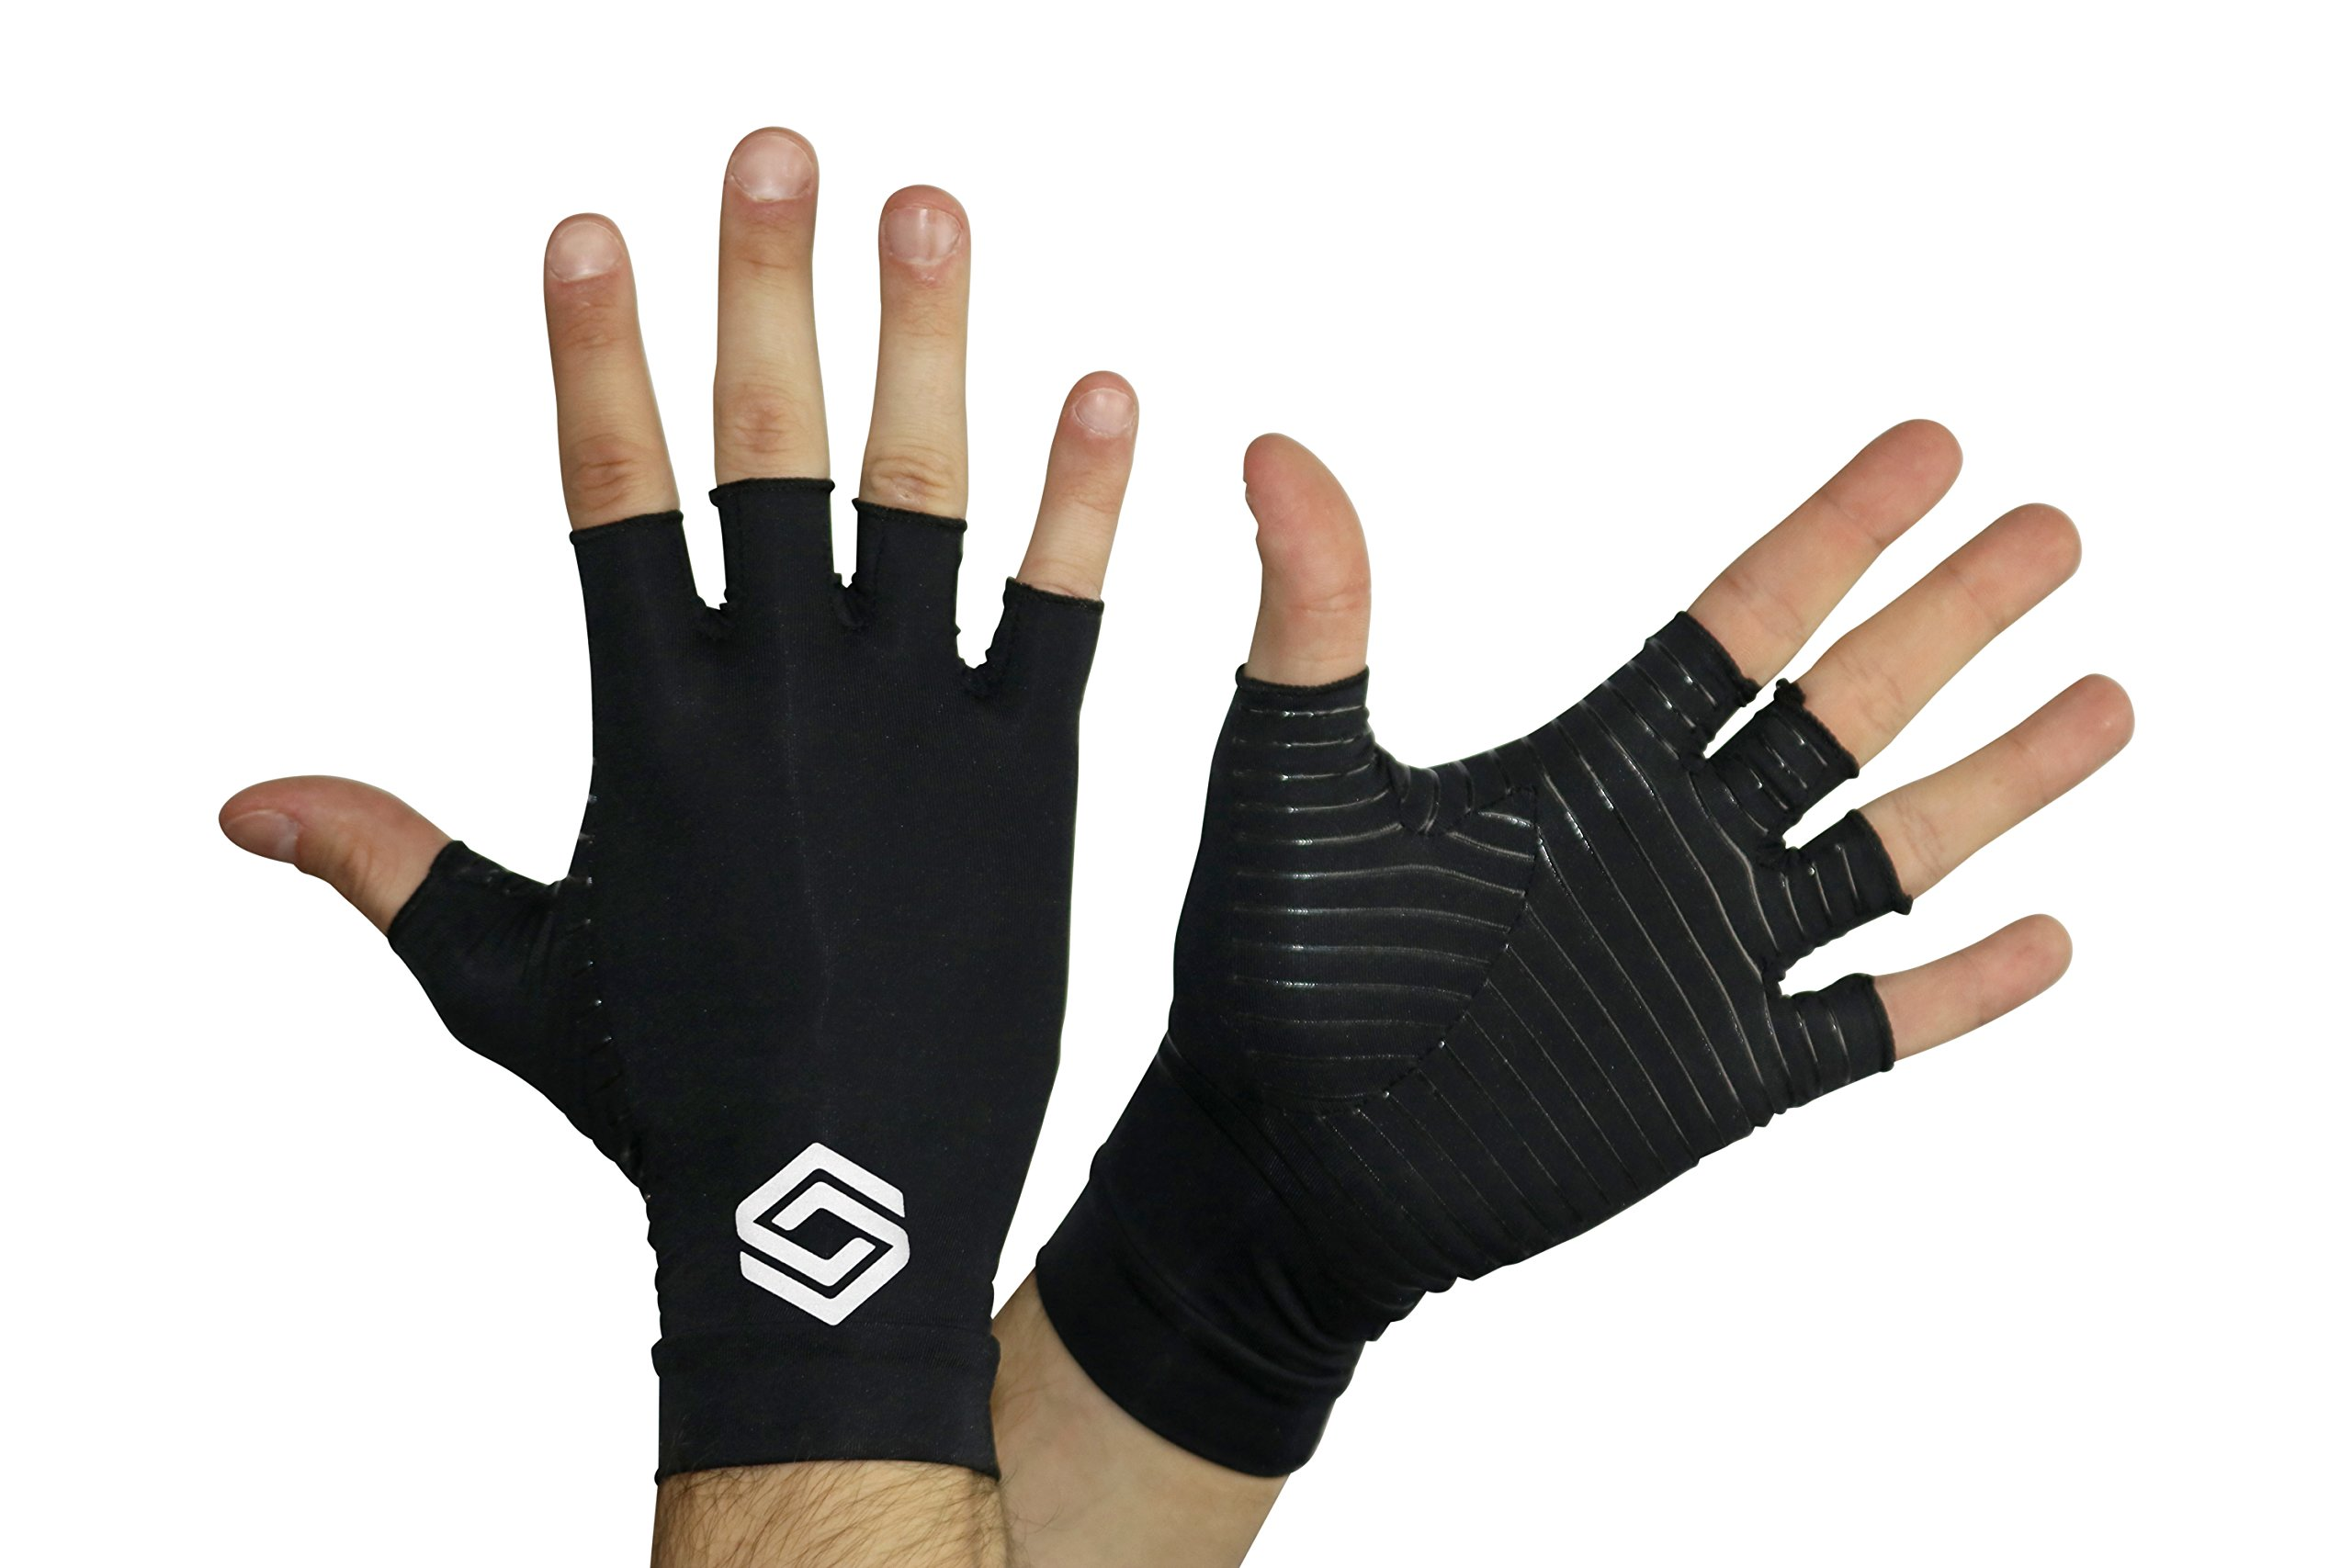 Arthritis Gloves #1 by Copper Infused Compression - GUARANTEED To Speed Up Recovery & Relieve Symptoms of Arthritis, RSI, Carpal Tunnel, Tendonitis & More - Men & Women - 1 Pair (small)